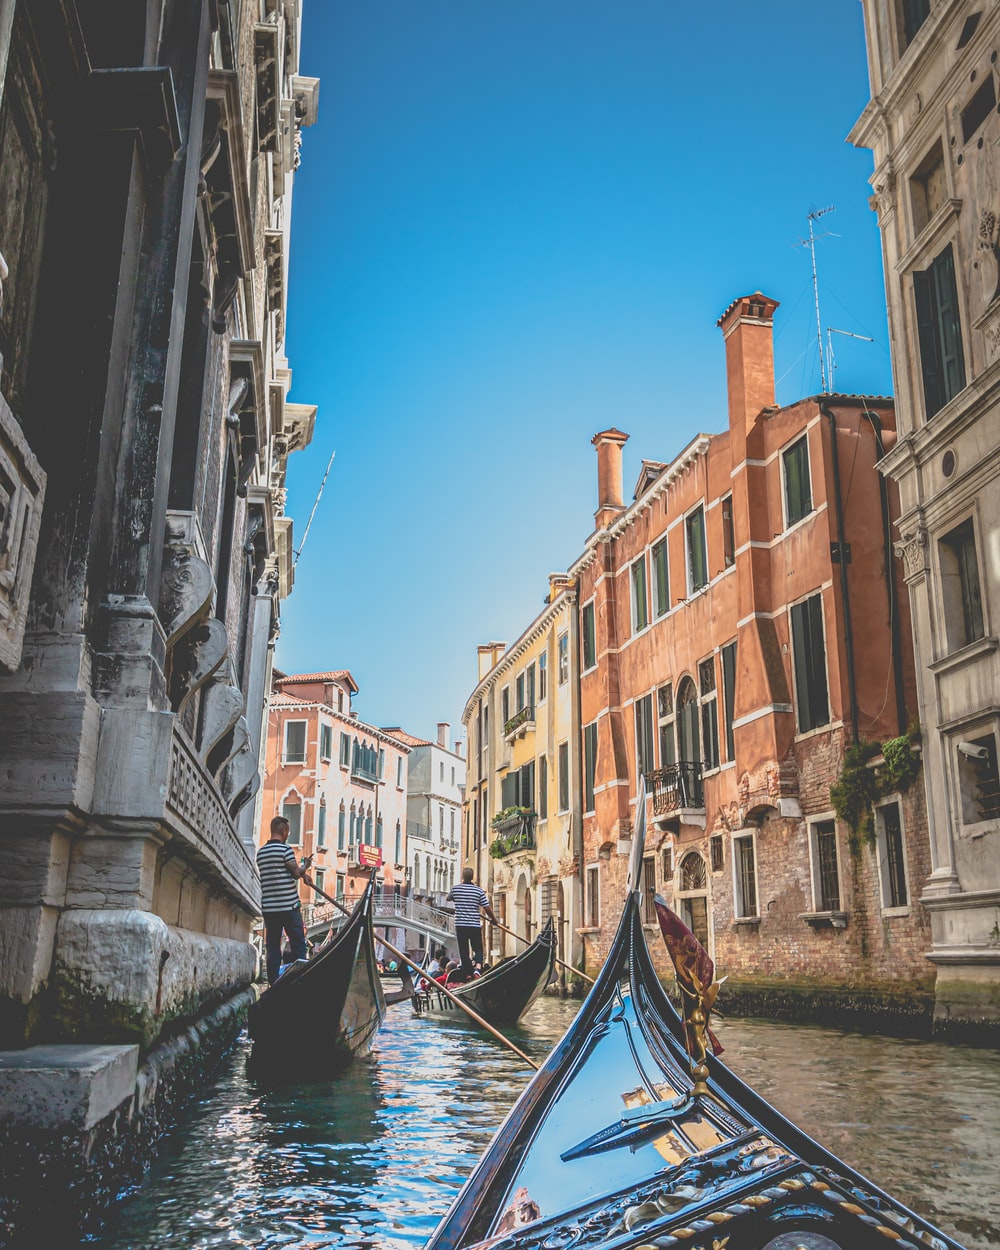 gondola boats in a canal in Venice, Italy